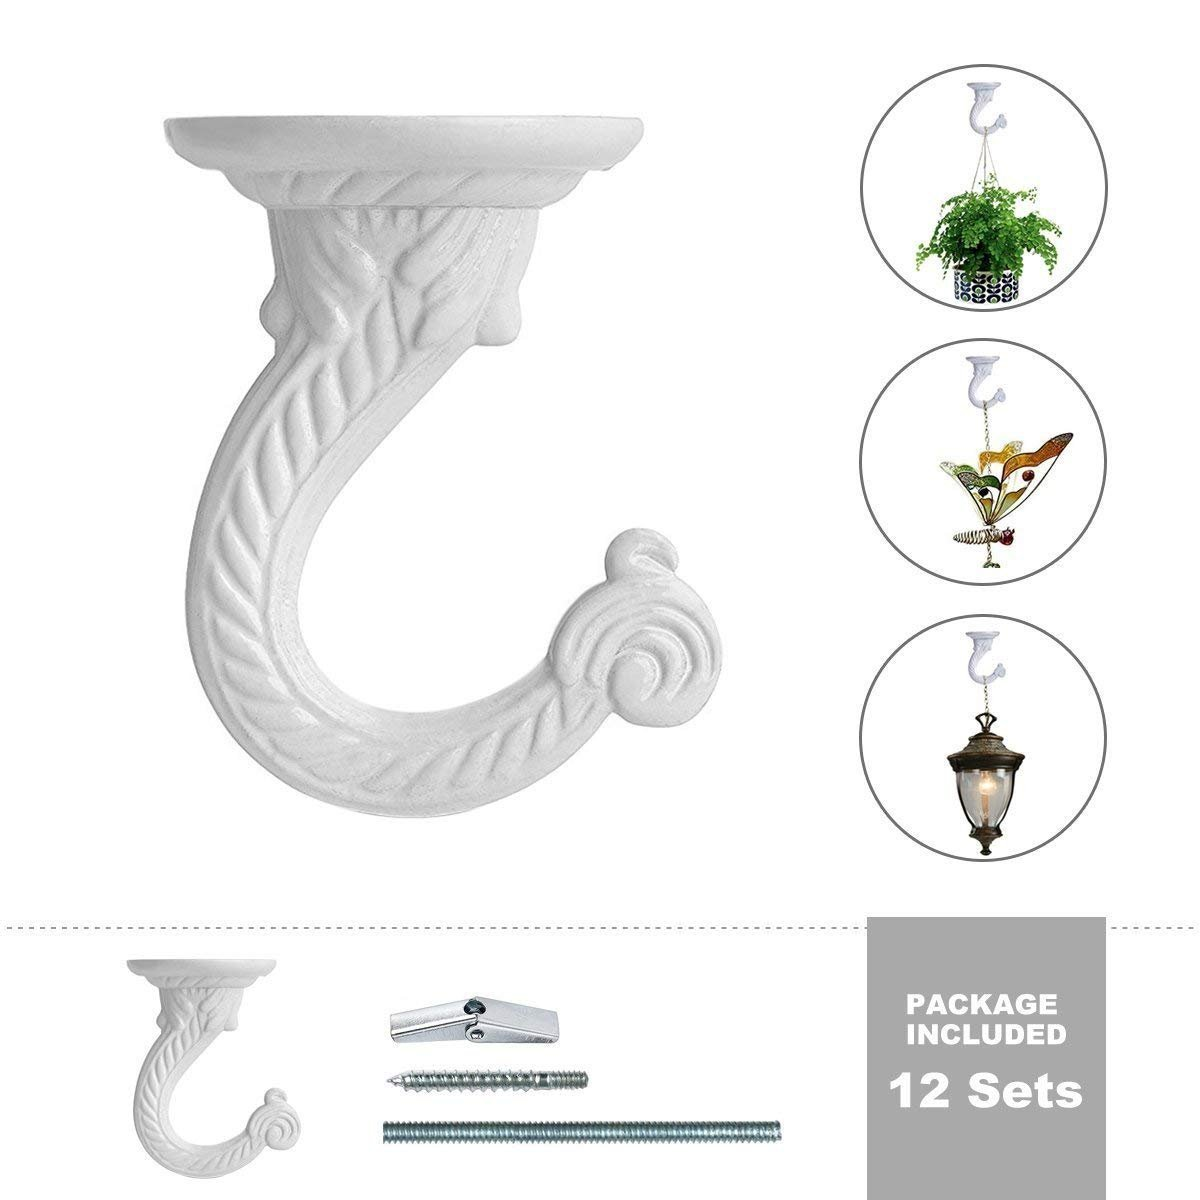 Plant Ceiling Hooks, Teckcool Pack of 12 Complete Sets Heavy Duty Metal Ceiling Hooks,Swag Hooks with Steel Screws/Bolts and Toggle Wings,White Enamel Finish